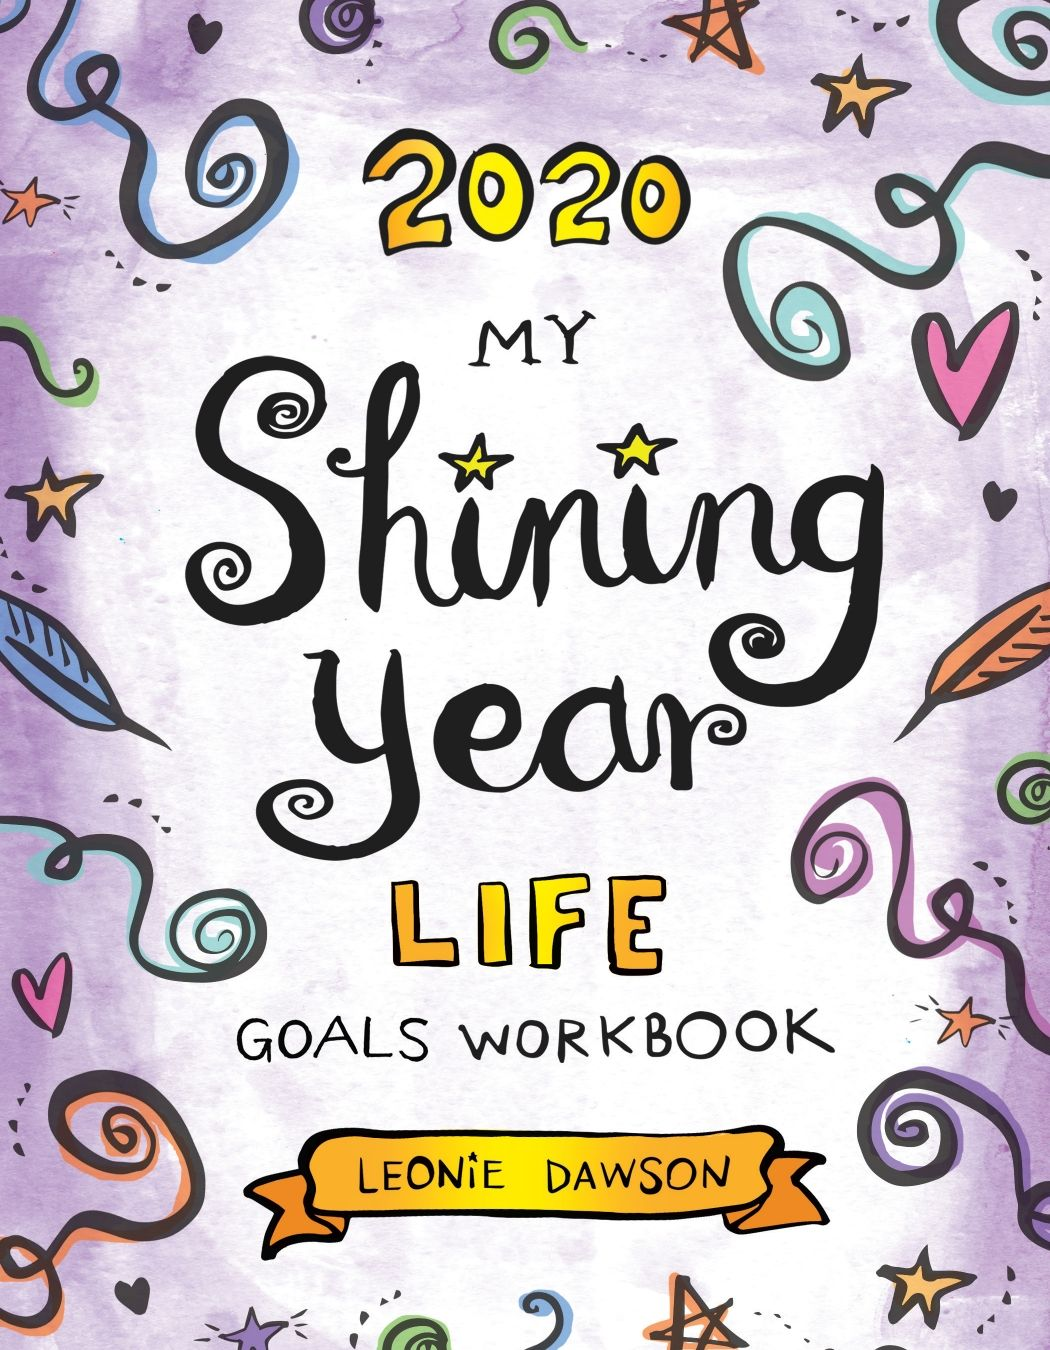 2020 My Shining Year Life Goals Workbook by Leonie Dawson | The Best 2020 Pagan and Witchy Planners | WitchcraftedLife.com